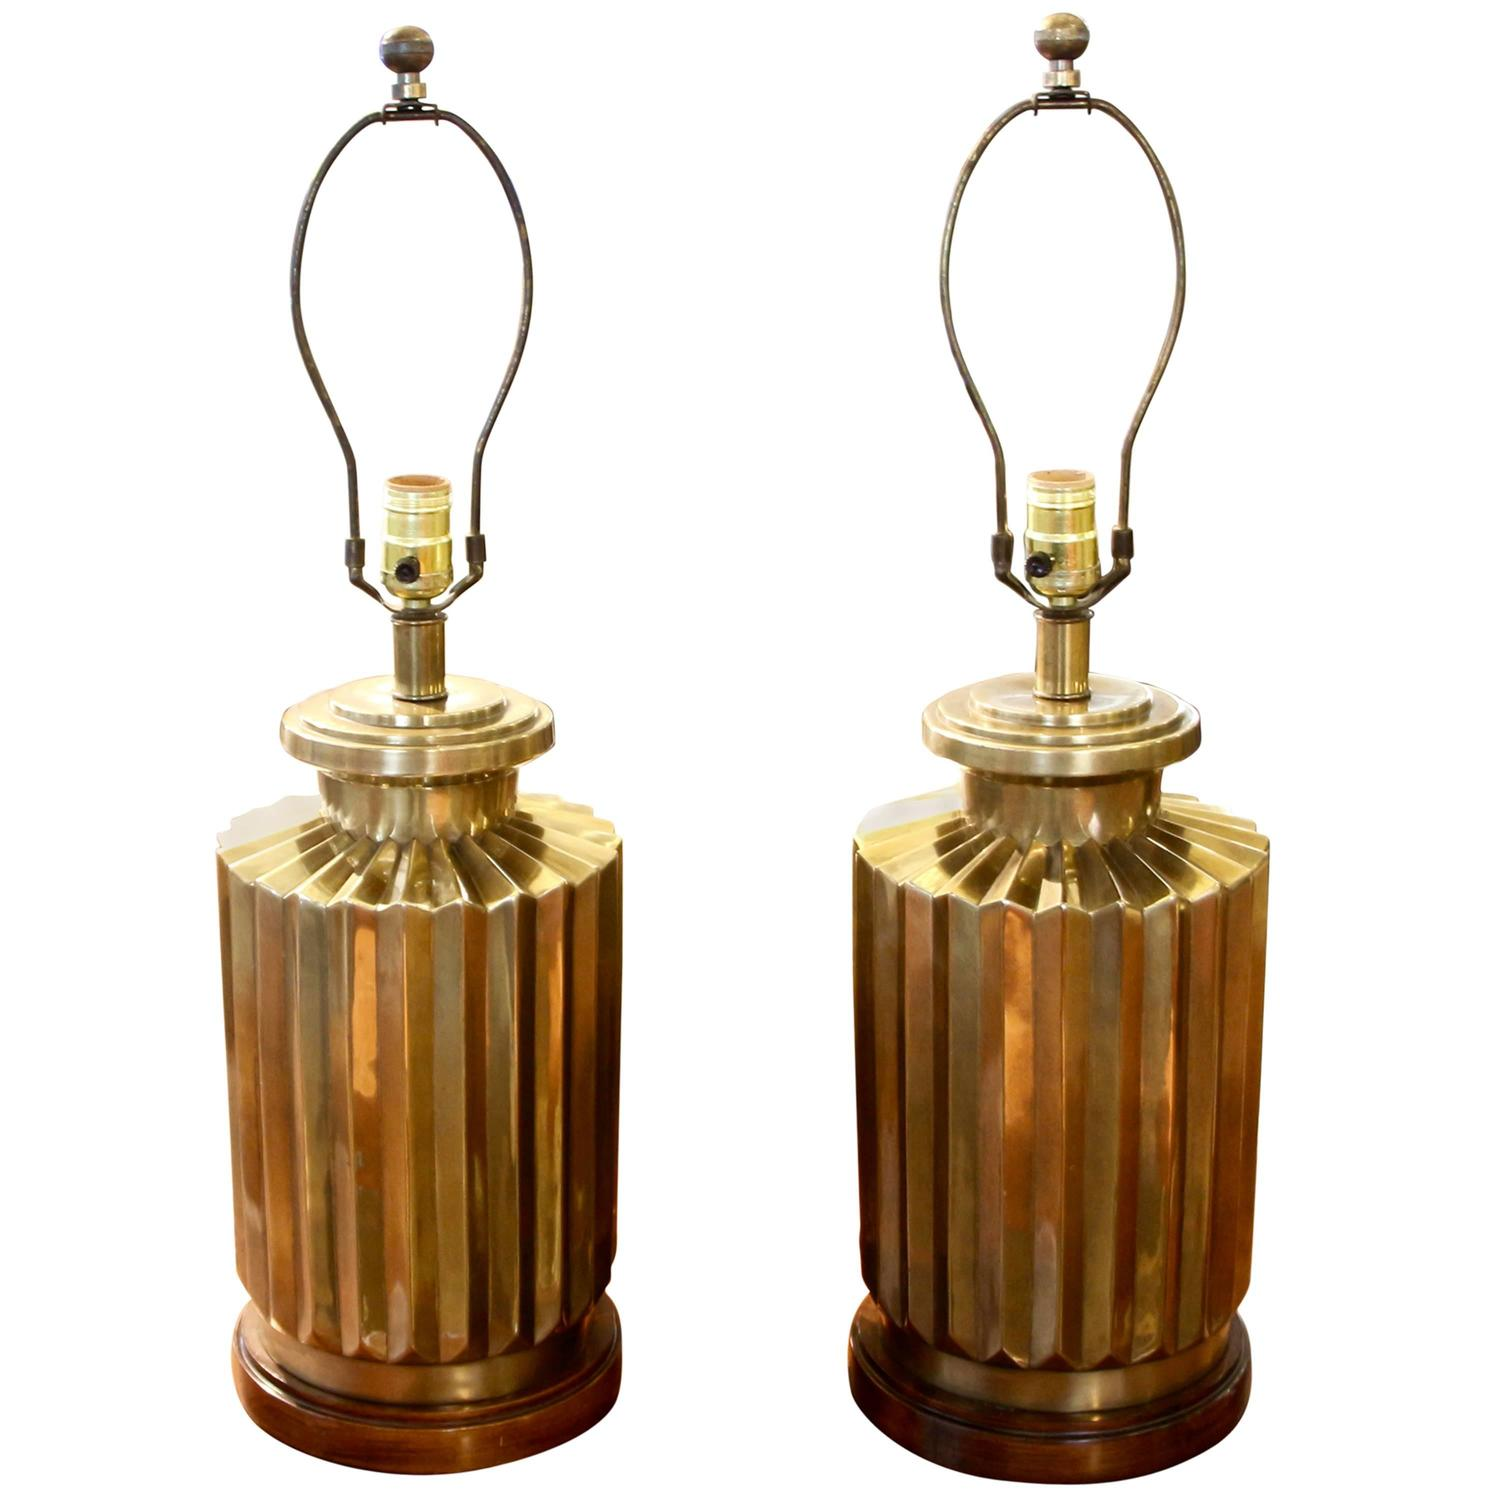 Vintage frederick cooper brass lamps at 1stdibs